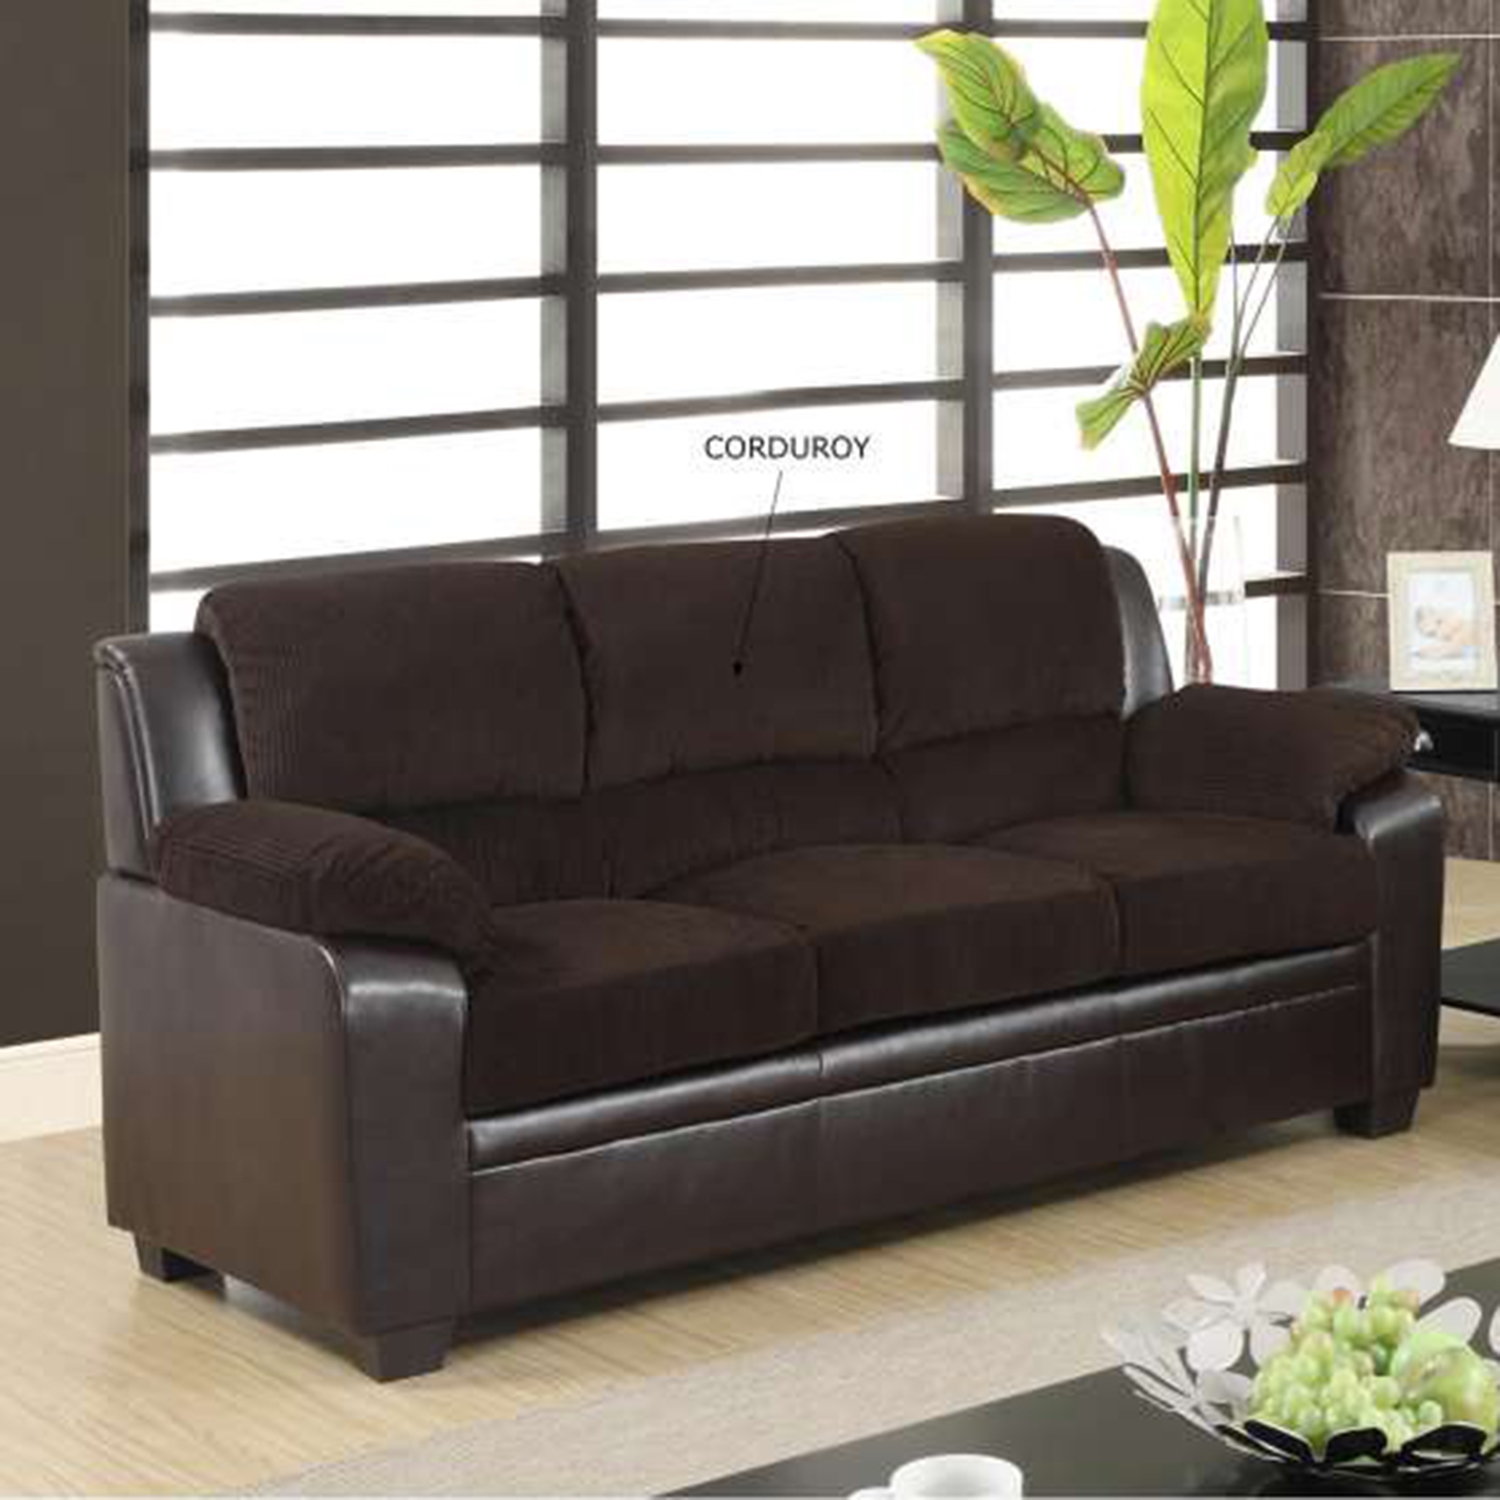 Fernando Sofa Set in Chocolate/Brown - GLO-U880018KD-CHOC-SET